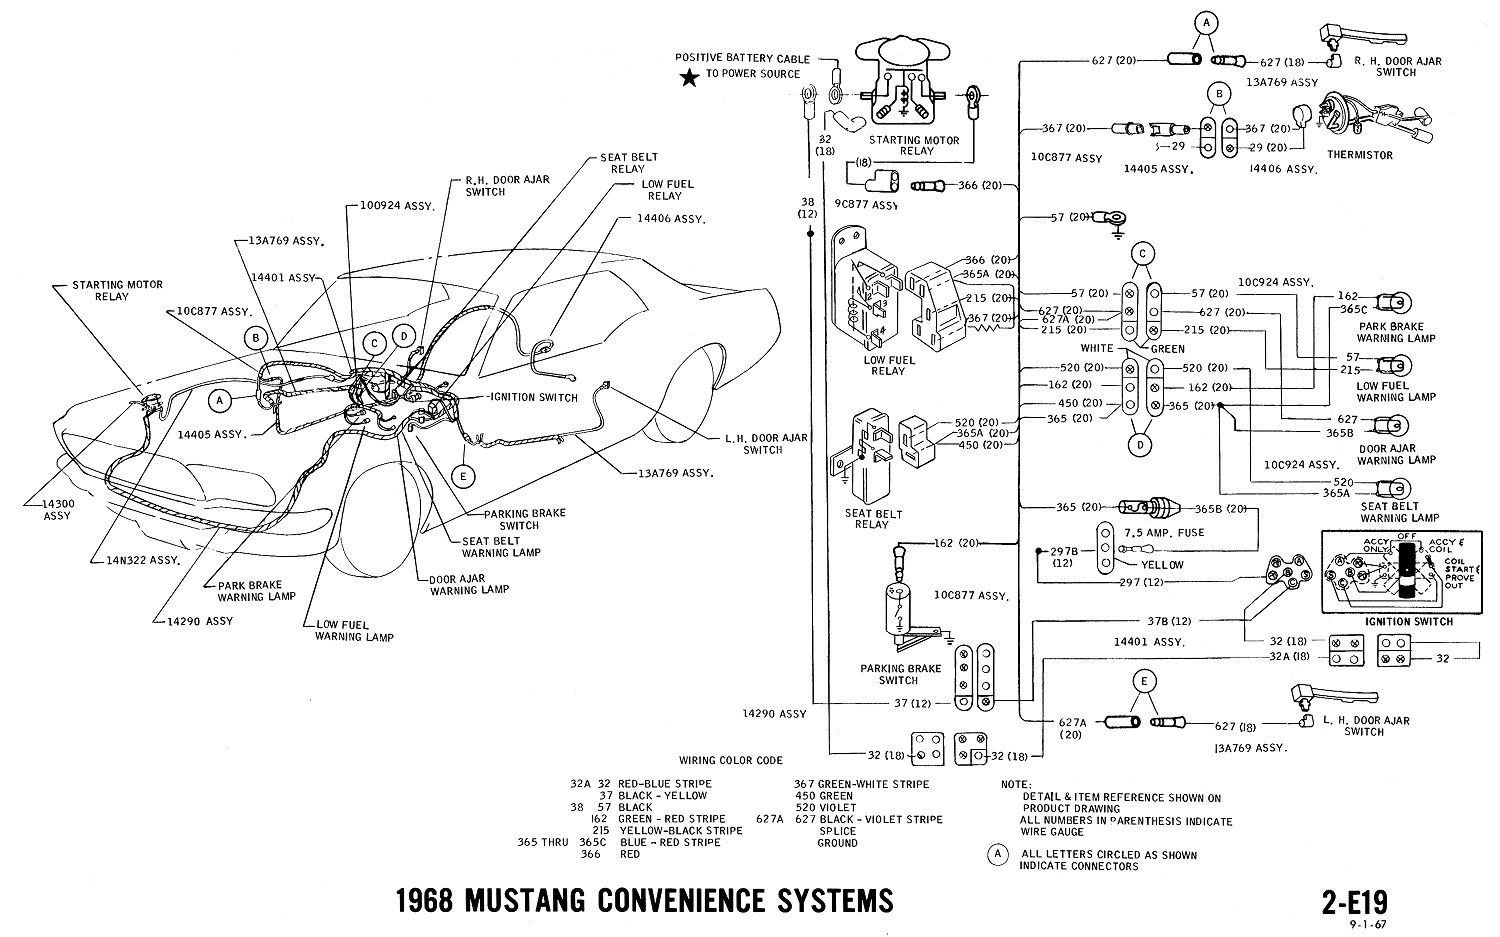 1968 mustang wiring diagram convenience systems 1968 mustang wiring diagrams and vacuum schematics average joe 1969 mustang wiring harness at creativeand.co